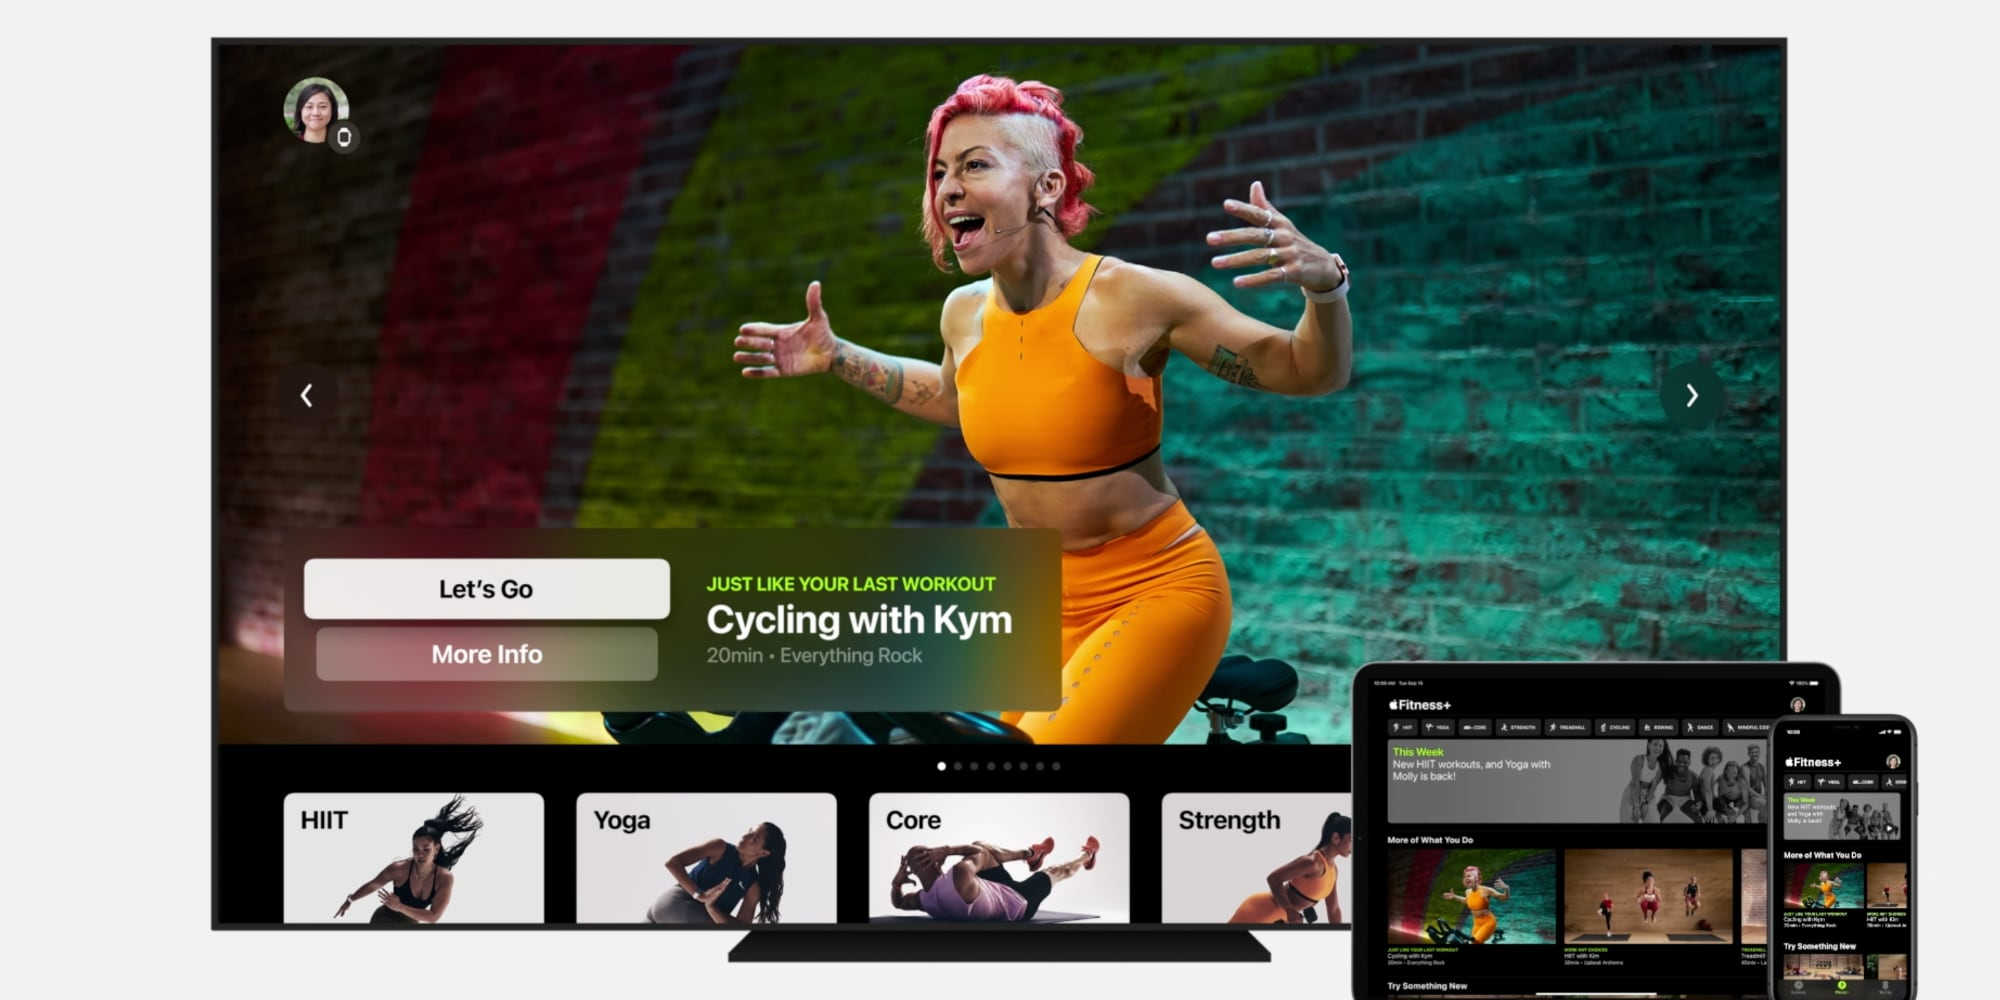 Apple Fitness+ instructors tease upcoming service as 'late 2020' launch nears - 9to5Mac